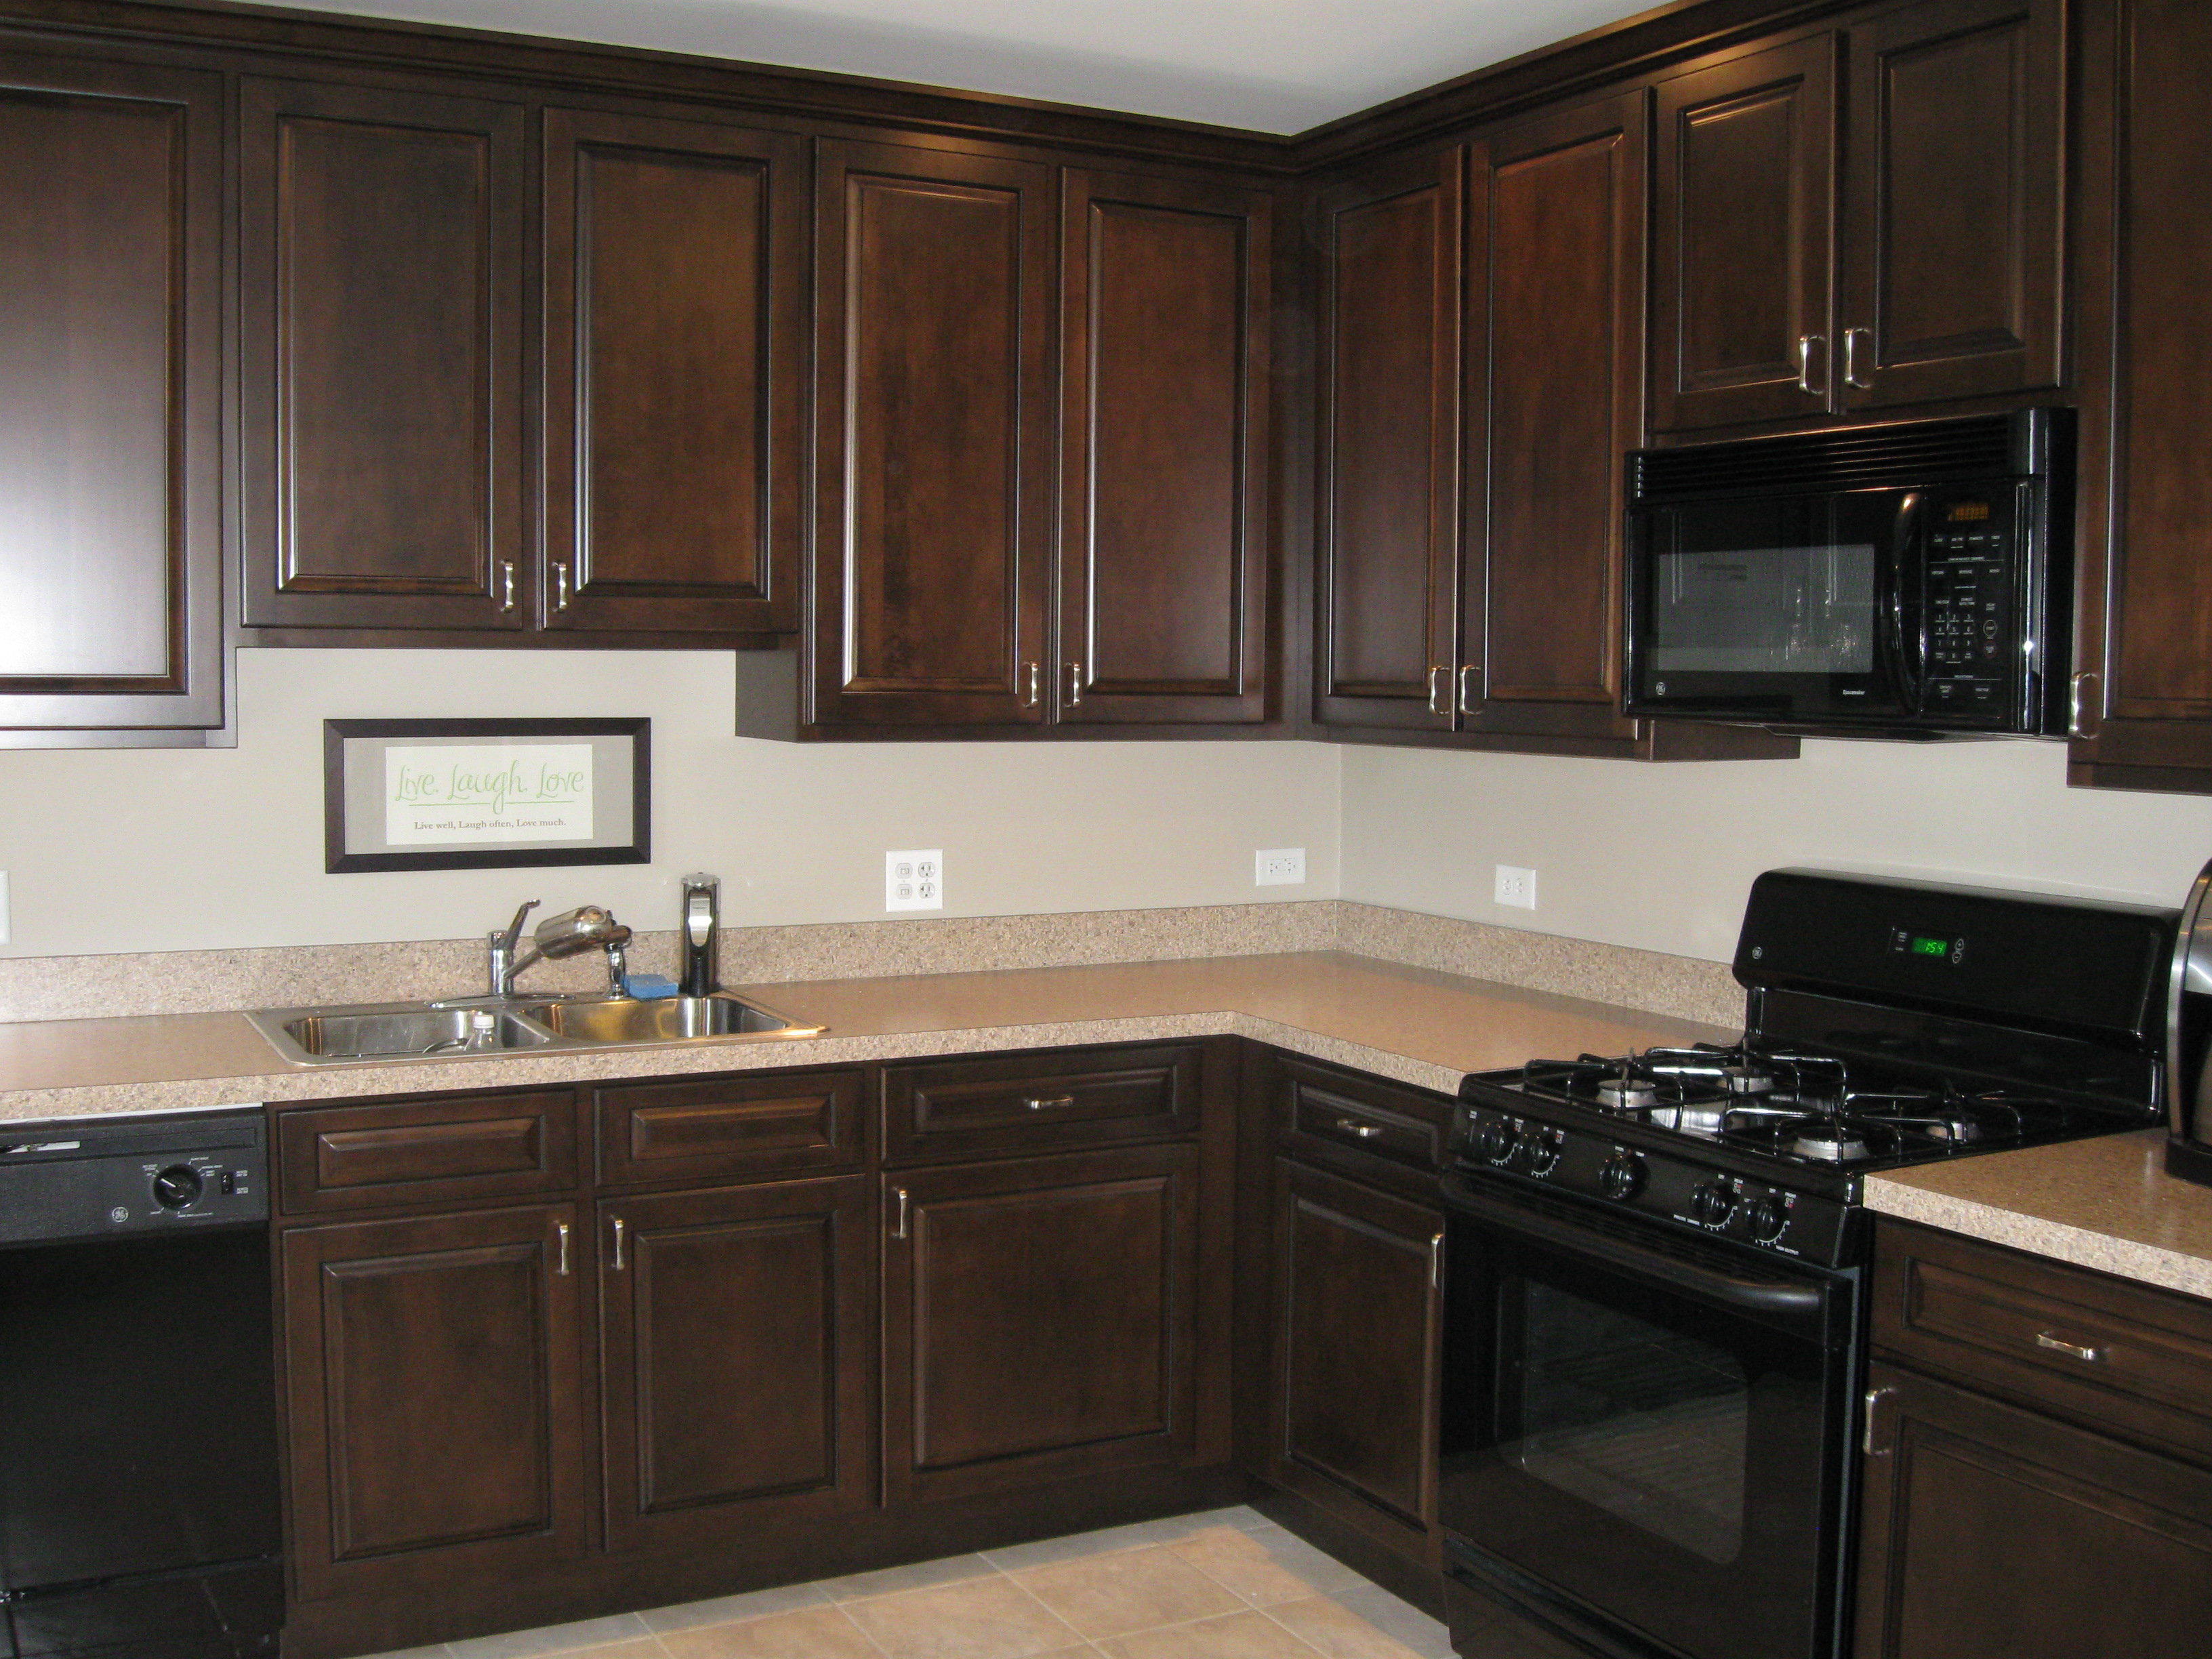 Cabinet refacing images for Oak kitchen cabinets